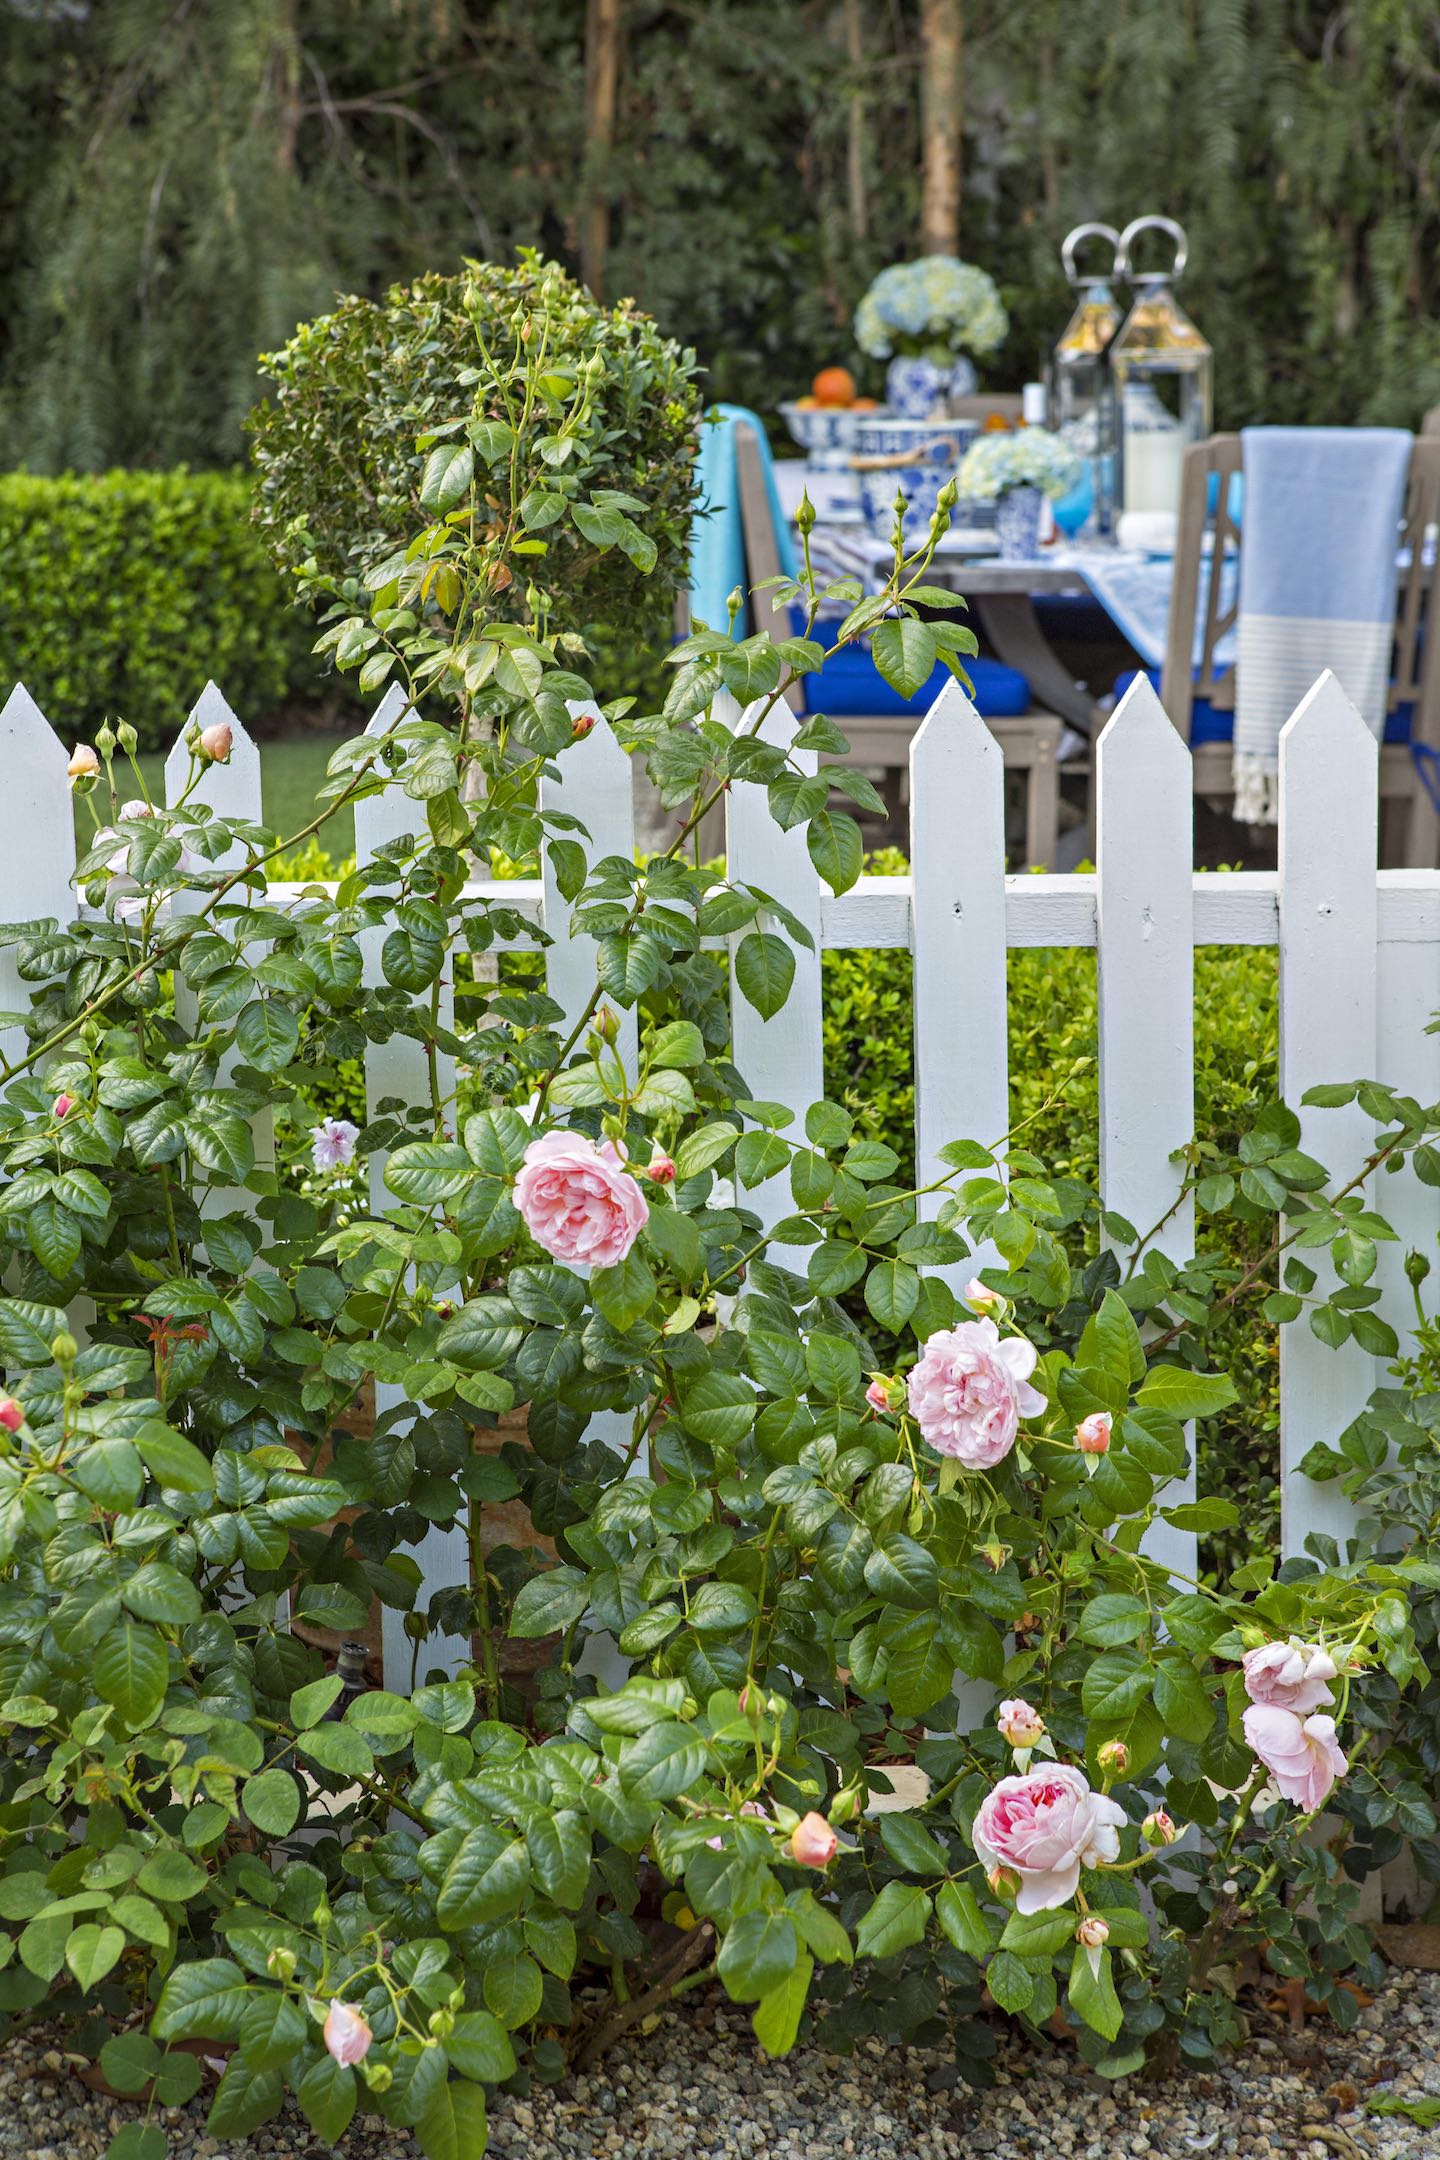 White picket fence with pink roses growing in front of it.